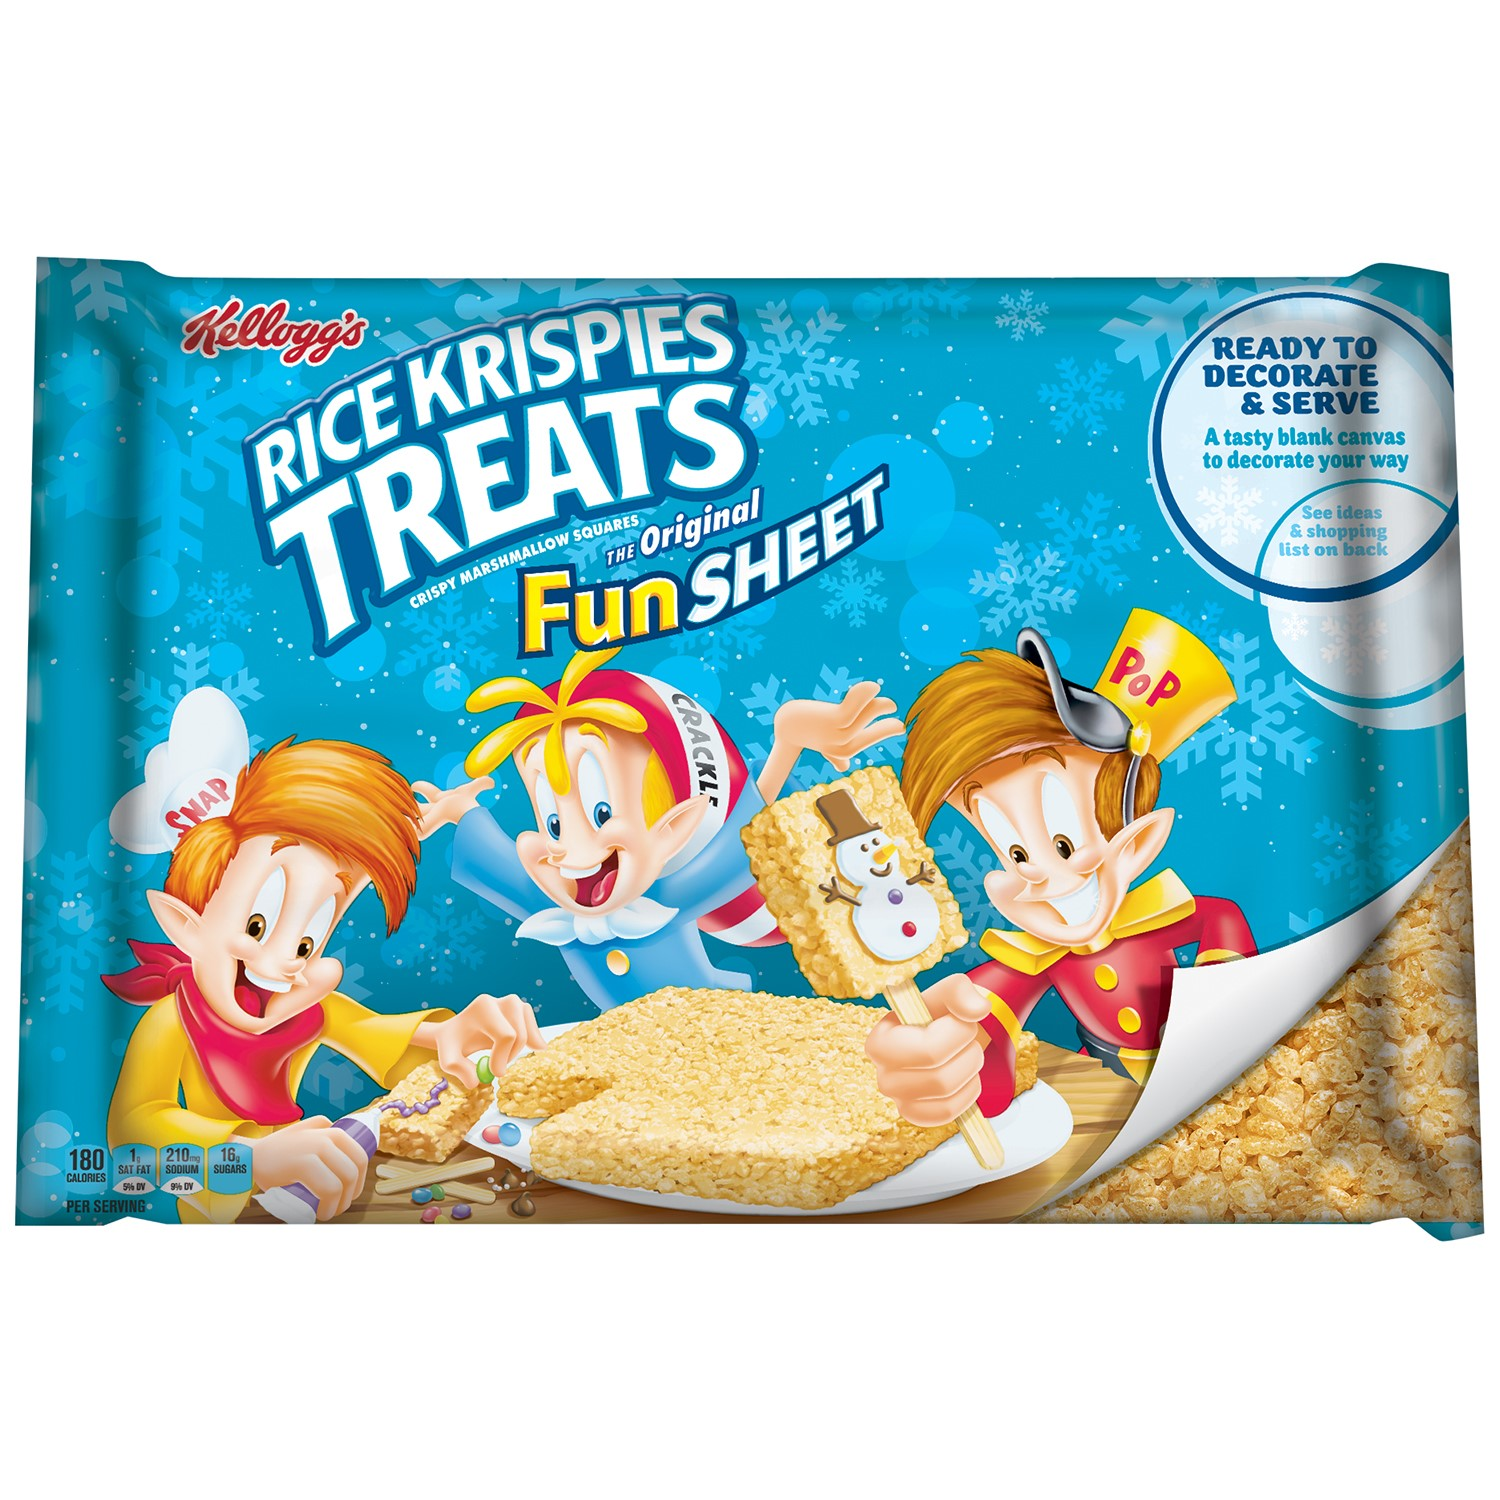 Kellogg's Rice Krispies Treats Fun Sheet, 32 Oz